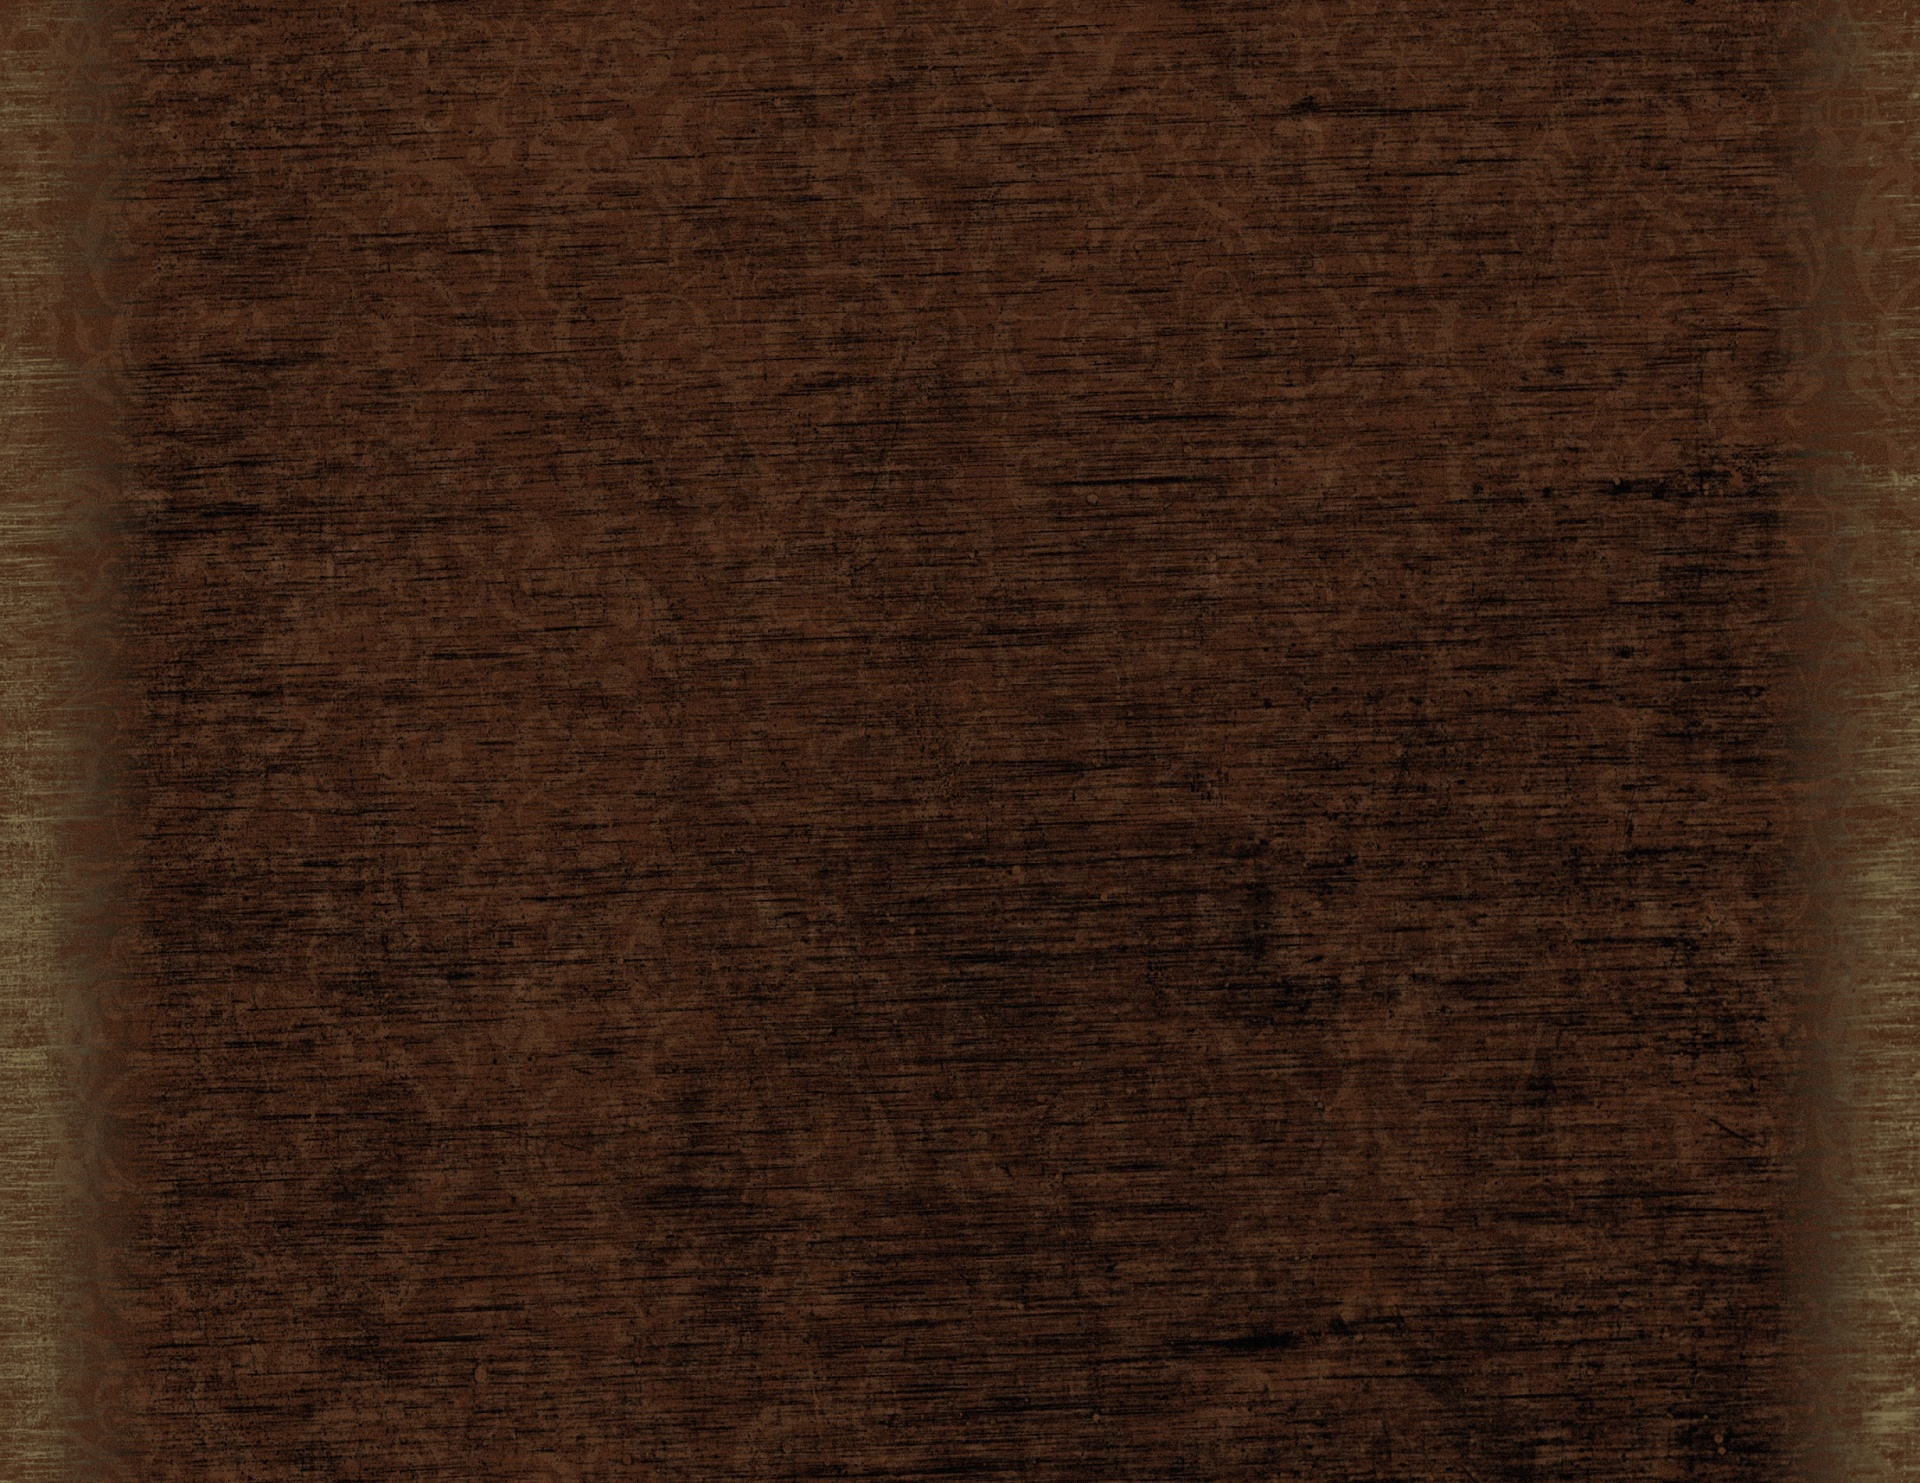 Latest Wallpaper Hd 3d Dark Brown Black Background Free Stock Photo Public